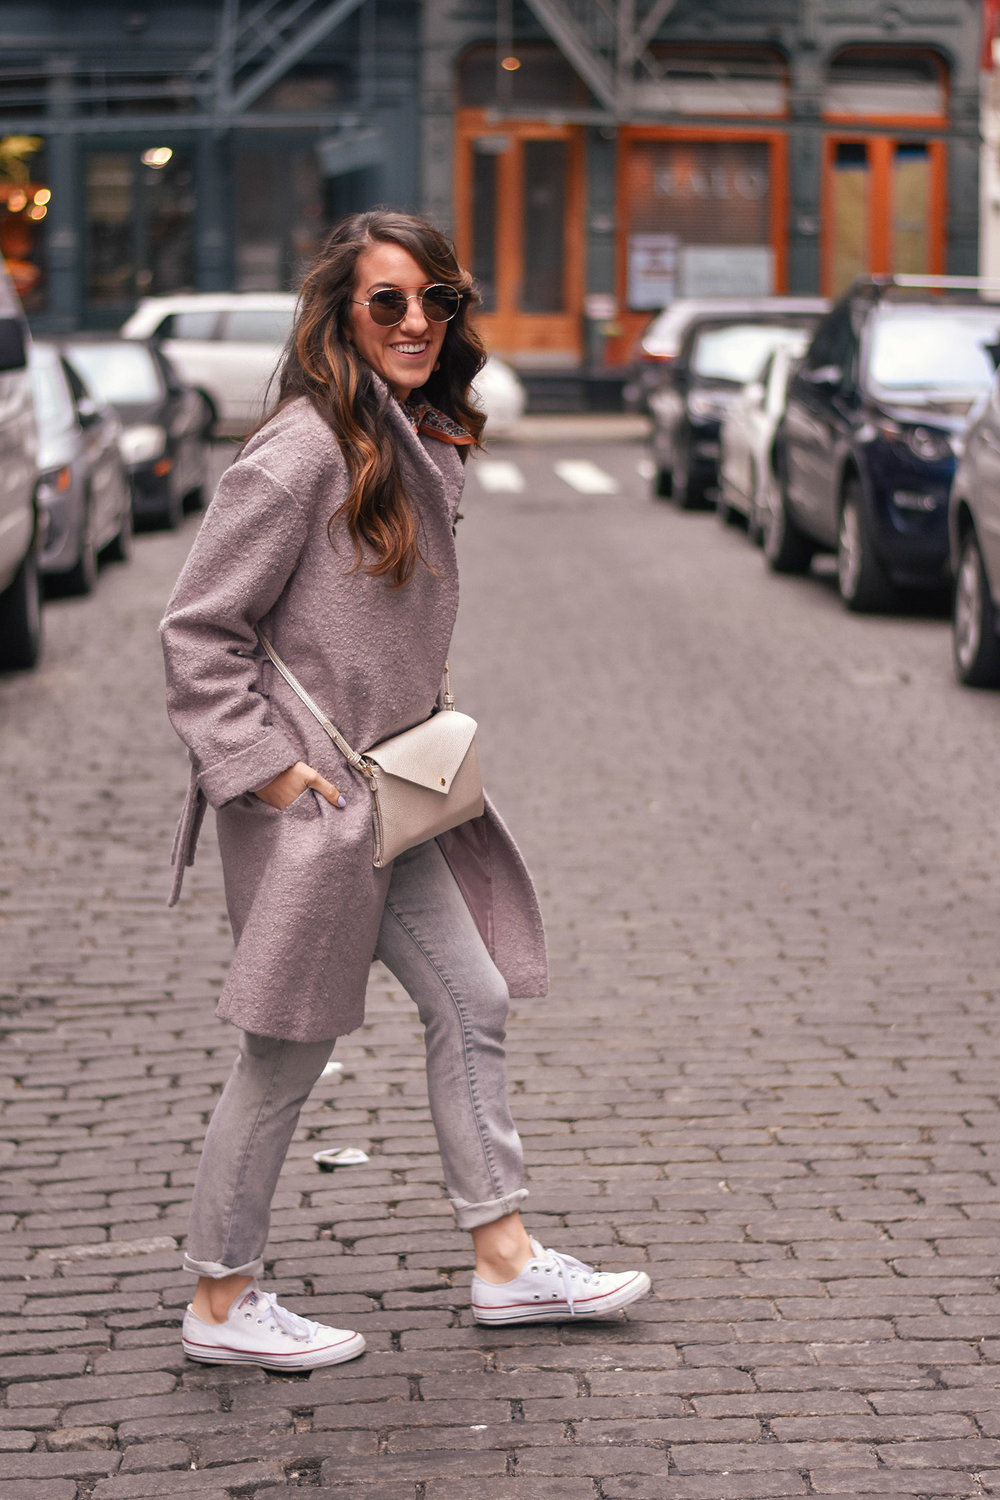 Asos coat [ similar ] //  Free People overalls  // Anthropologie tee [ similar ,  similar ,  love this graphic ,  feminine blouse ,  love this purple ] / bag [ similar ,  not similar but obsessed ] / sunnies [ similar ,  similar ,  splurge ] // Madewell scarf [ similar ,  similar ] / earrings [ cutie shapes ,  glitter ,  perfect for summer ] // Converse sneakers [ Nordstrom ,  Urban ,  this purple color is perfect for this look ] //